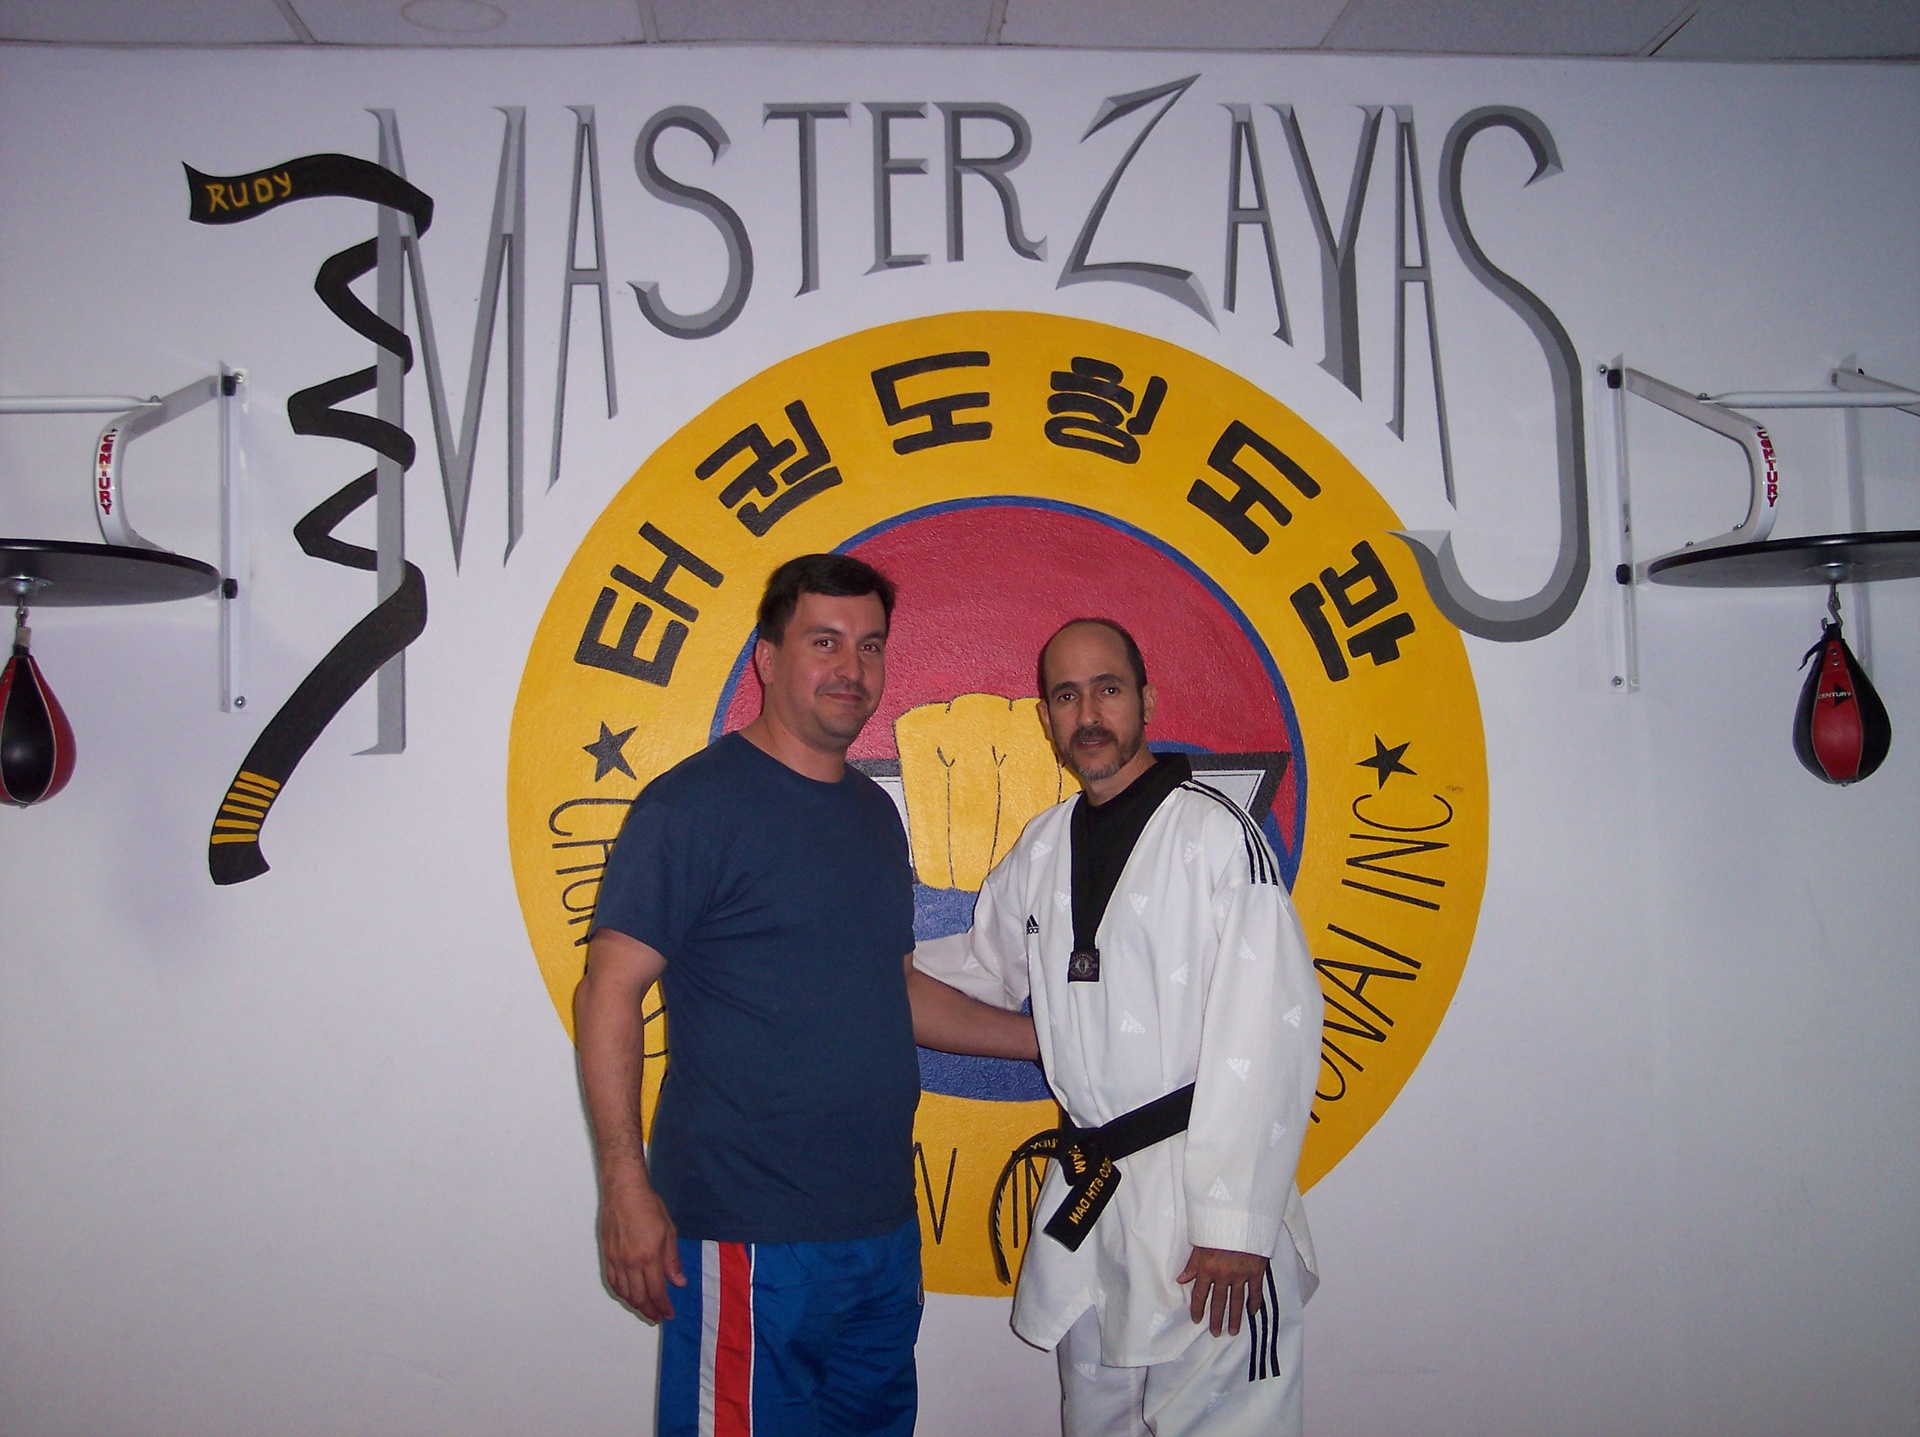 Master Zayas (Right) and Master Victor Fontanez (Left)